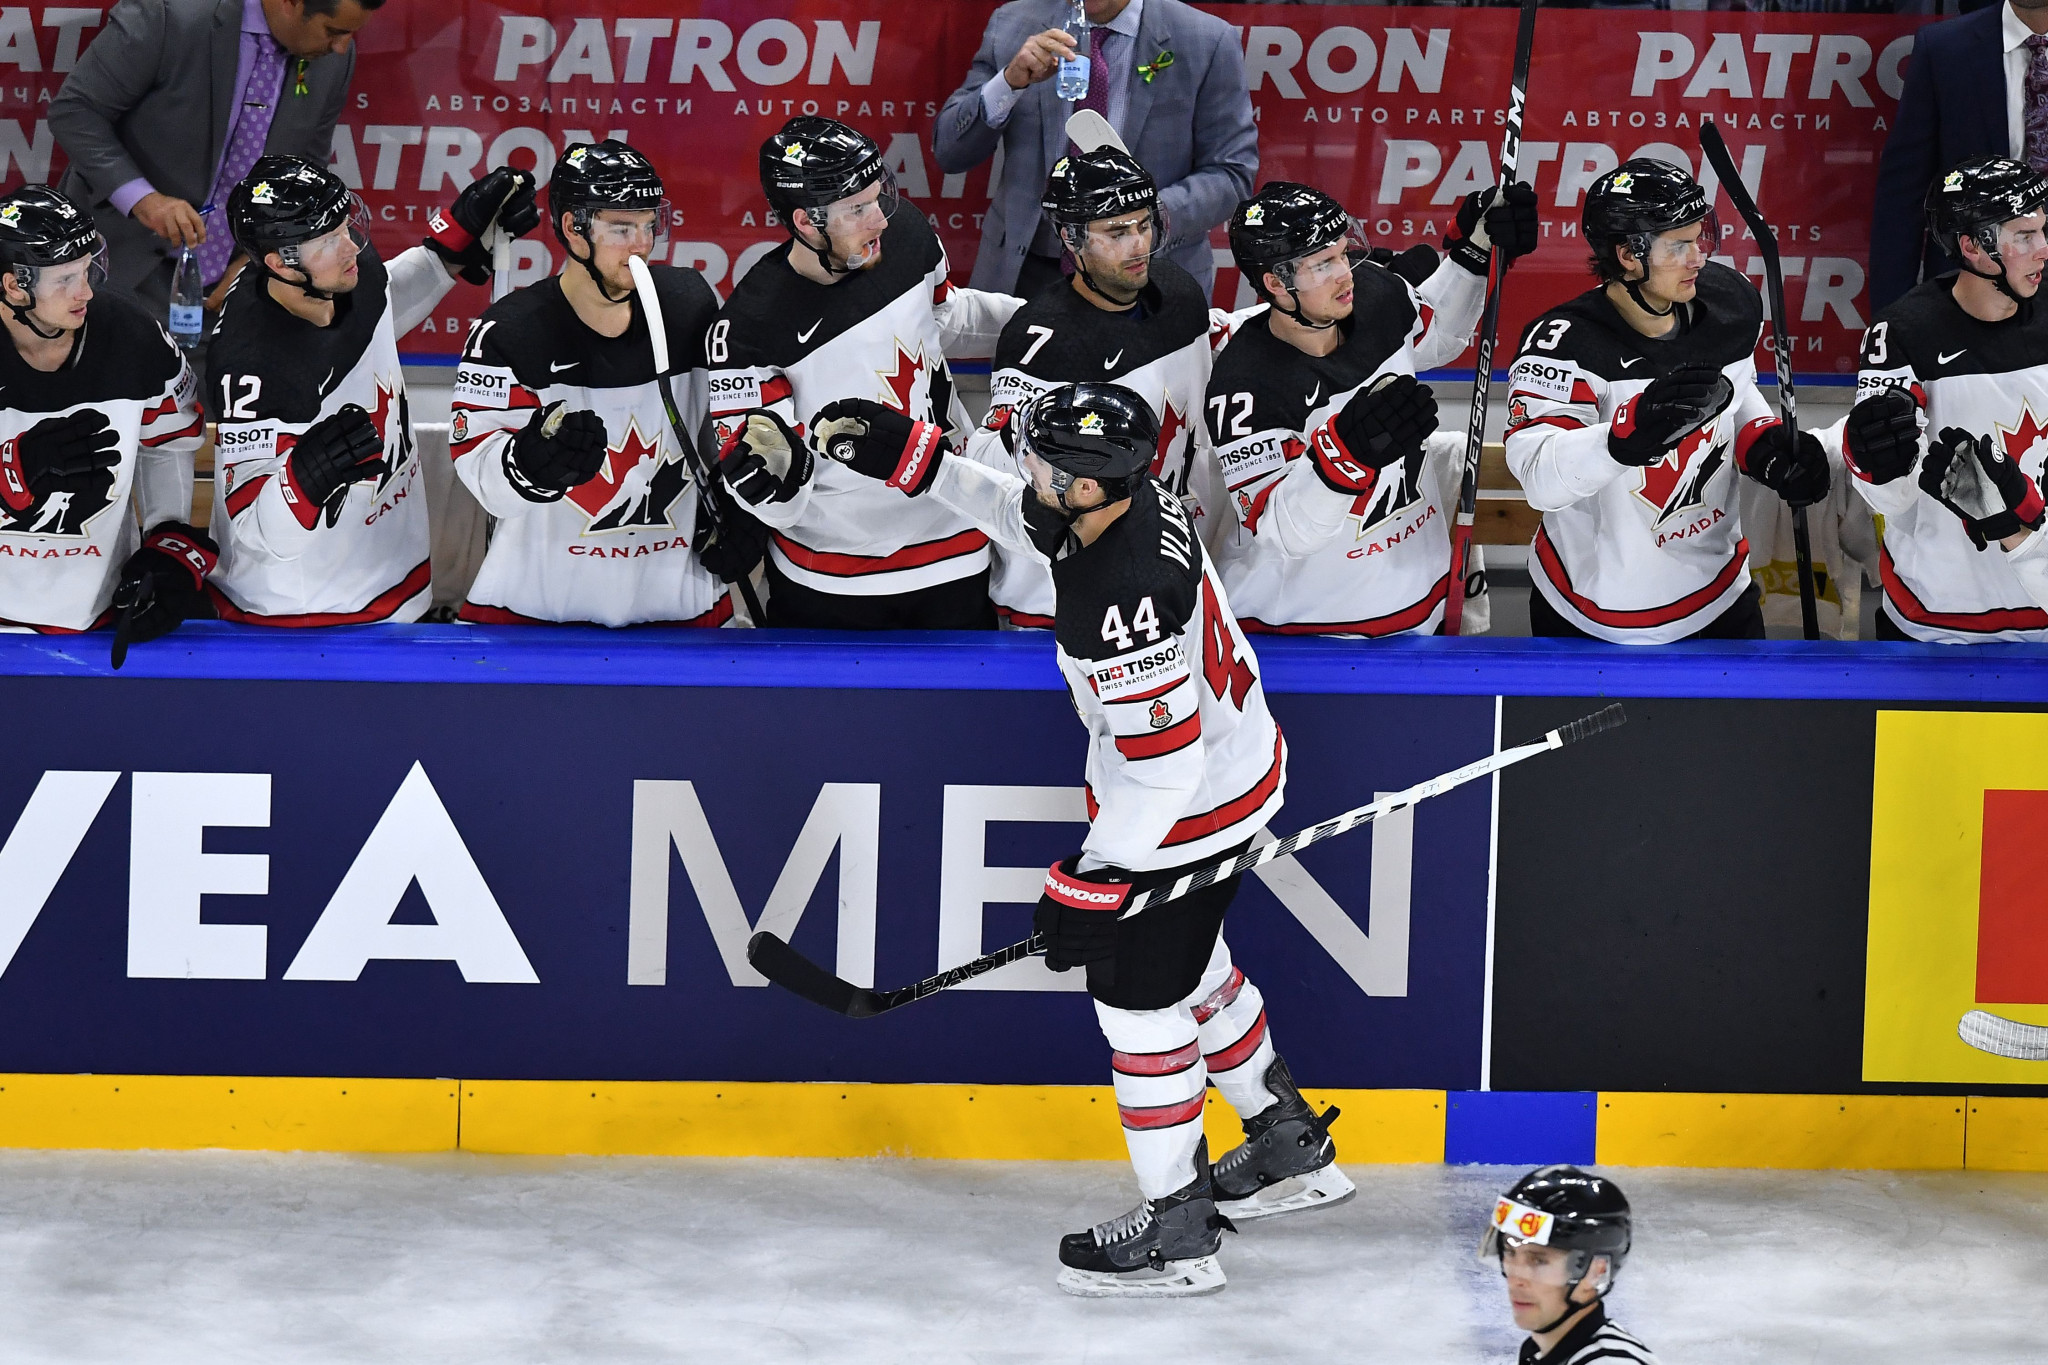 Canada remain top of IIHF rankings despite fourth place finish at World Championships